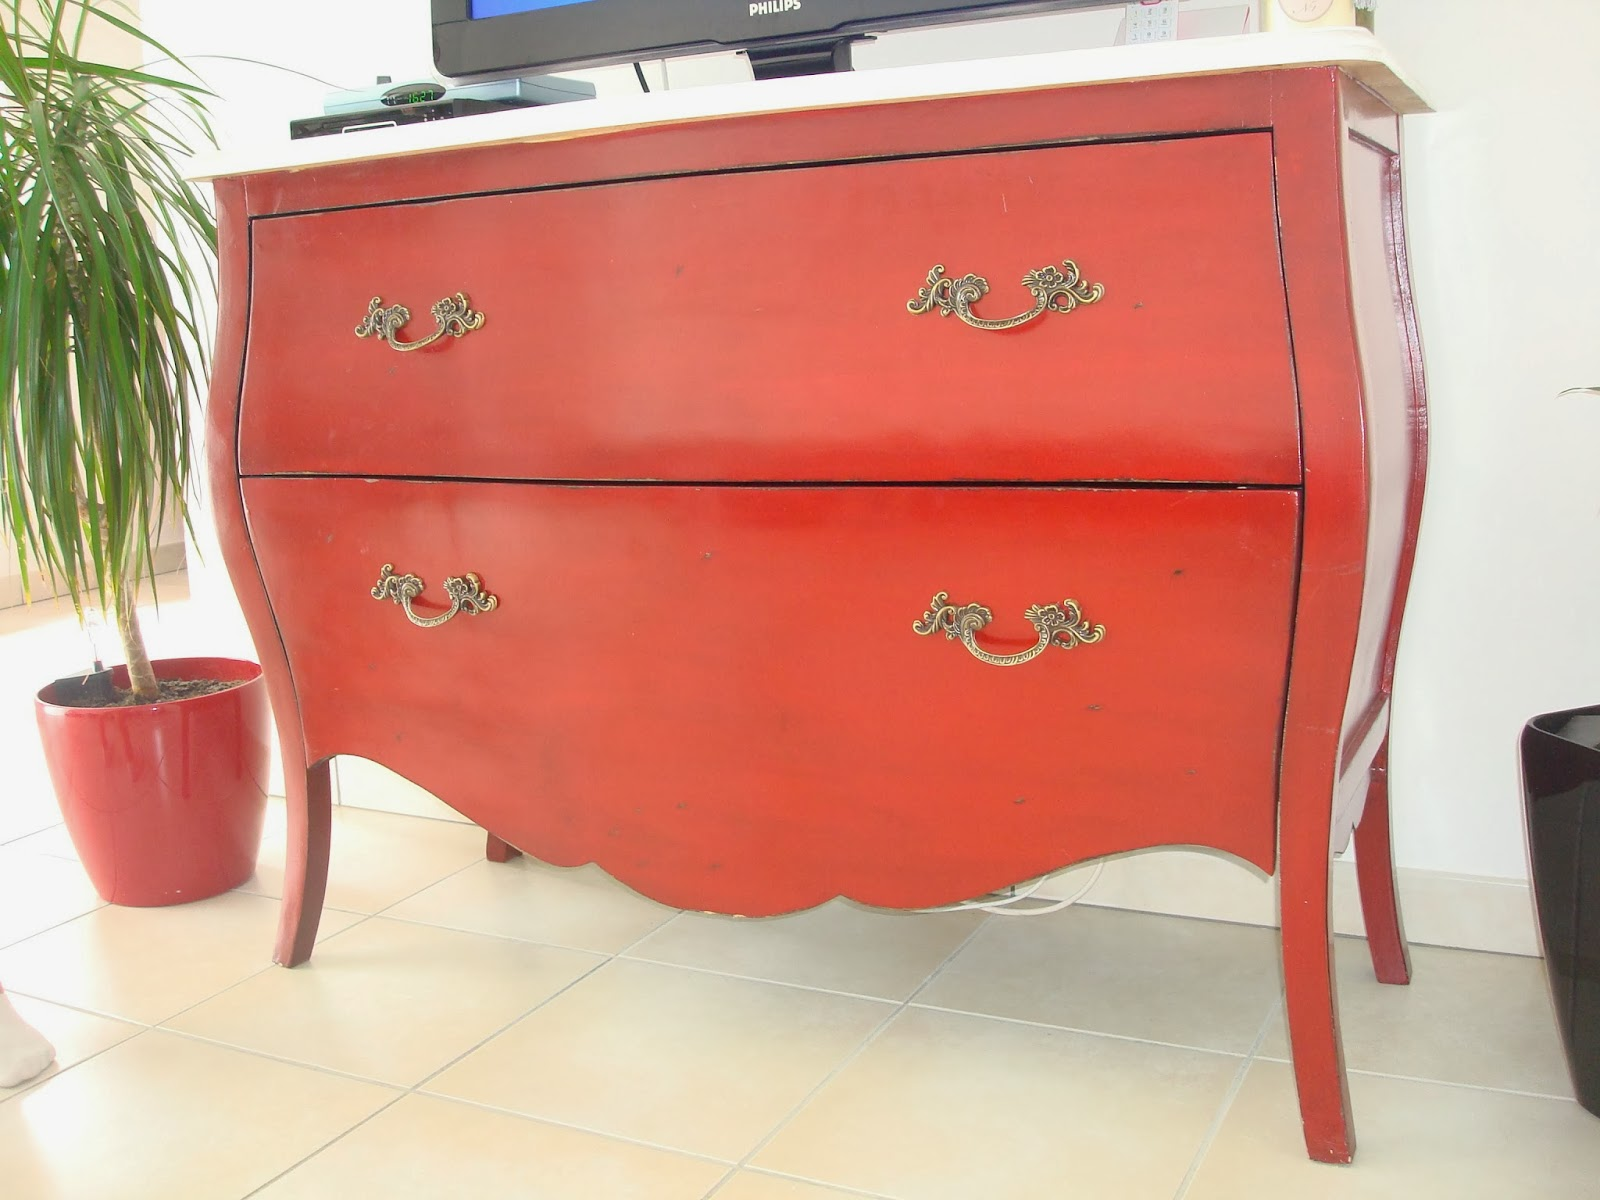 Commode Meuble Tv Conceptions De Maison Blanzza Com # Commode Meuble Tv